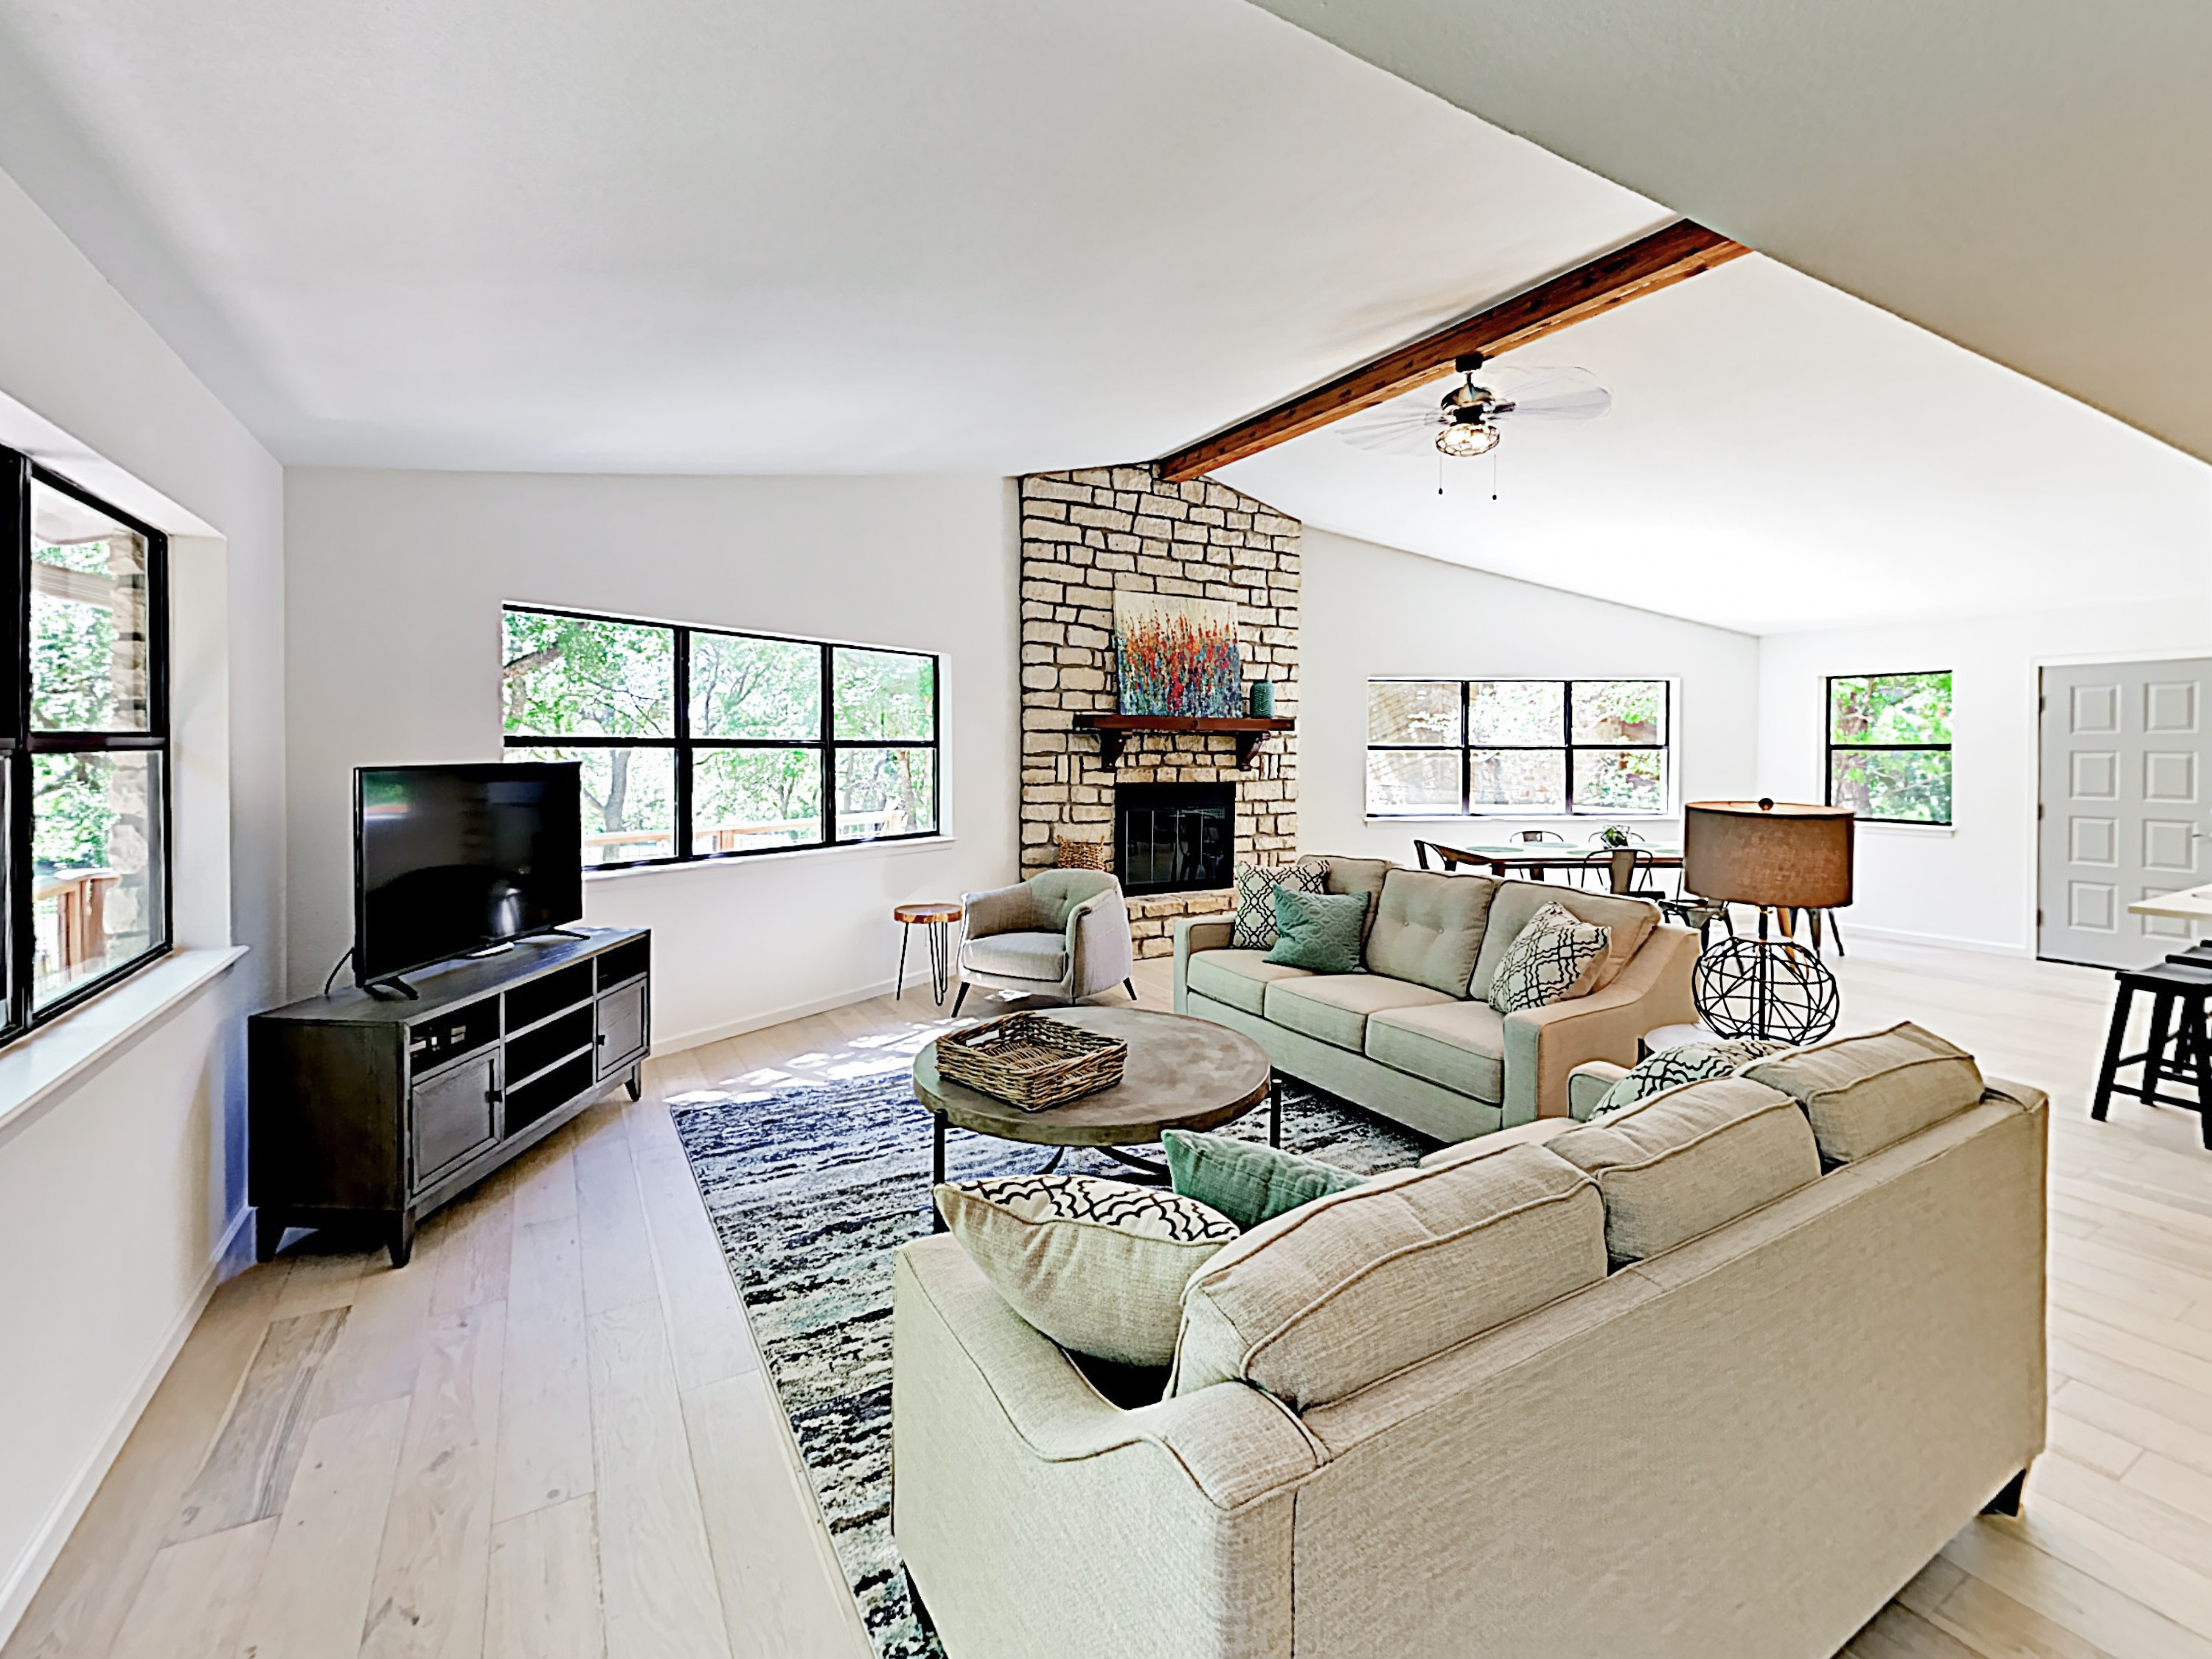 Horseshoe Bay TX Vacation Rental Welcome! This home